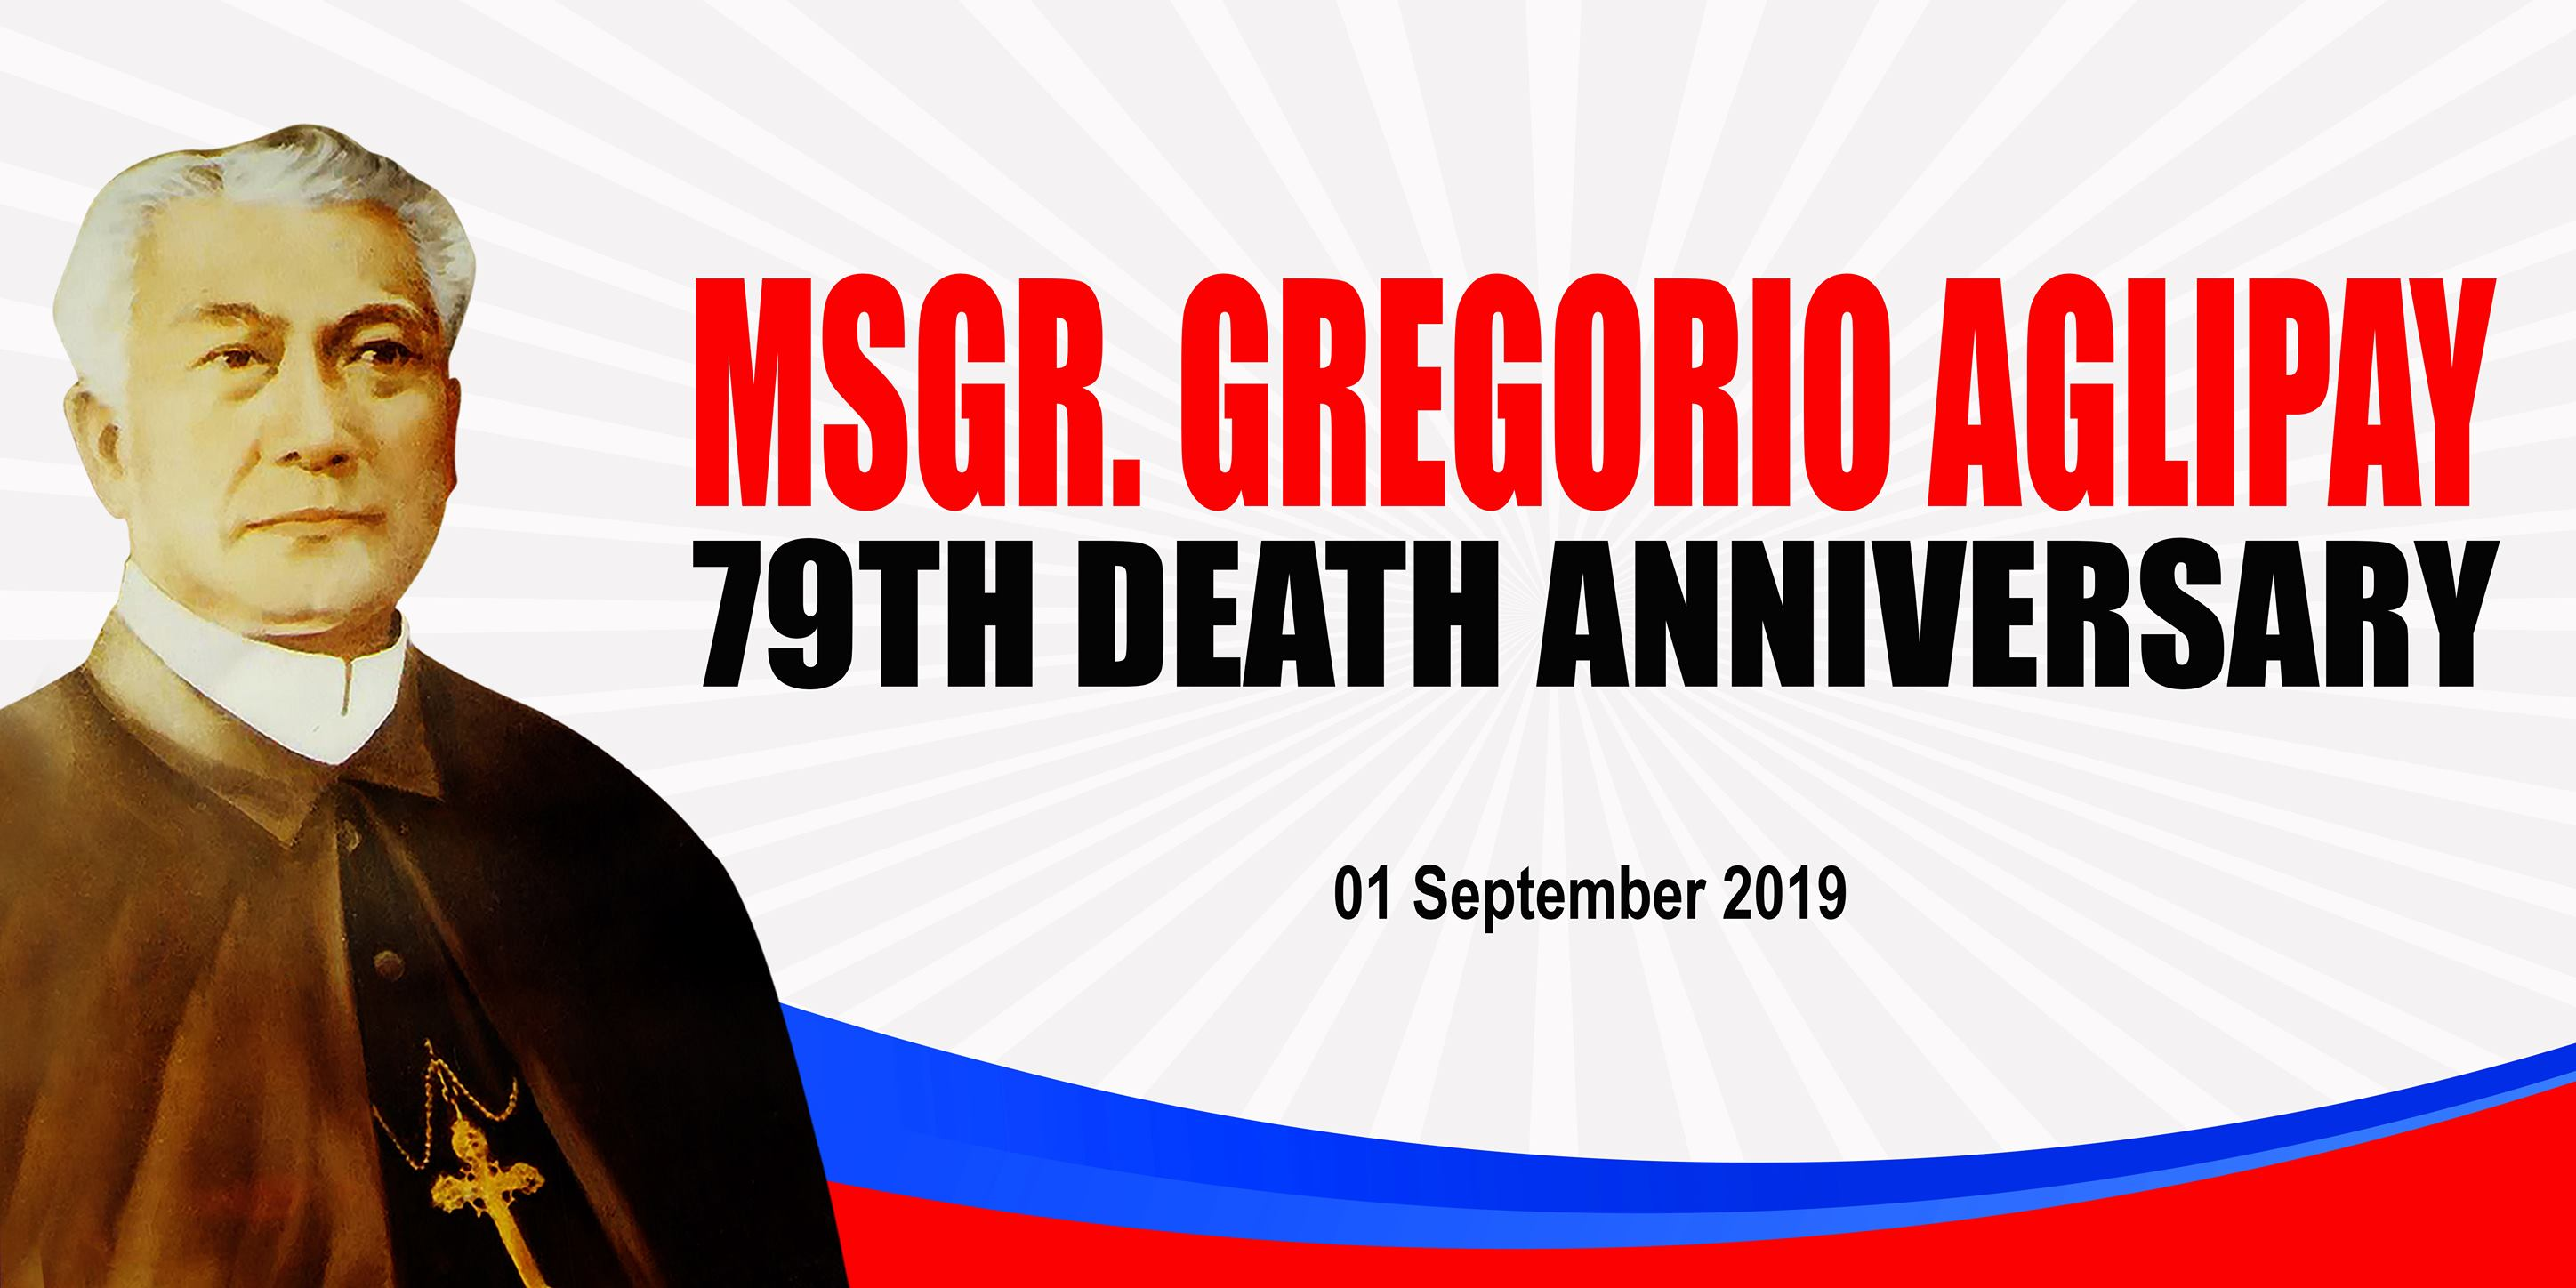 79th Death Anniversary of Msgr. Gregorio Labayan Aglipay